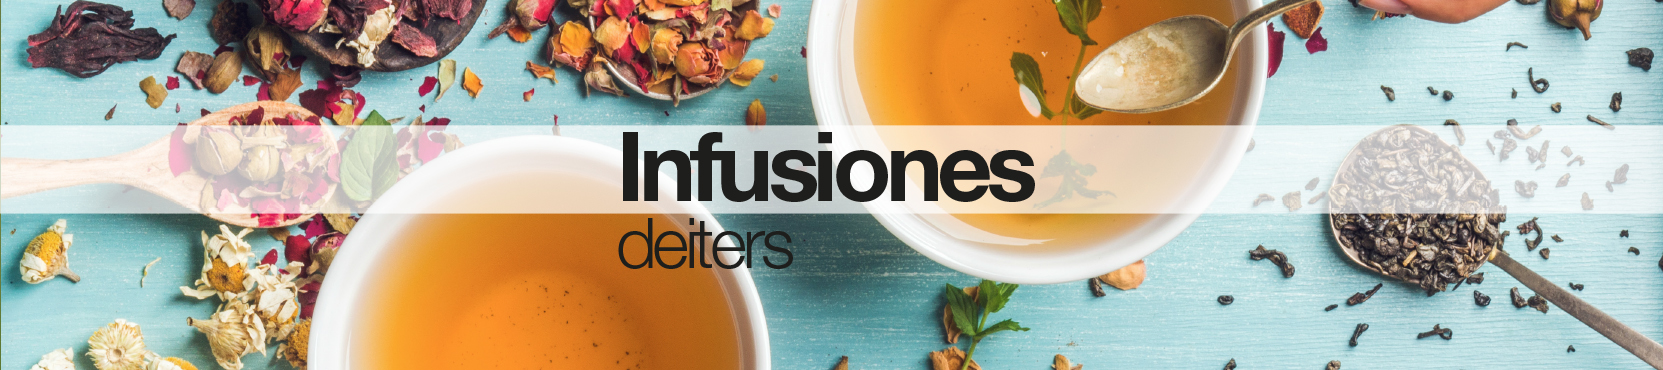 Slider Infusiones Deiters naturales